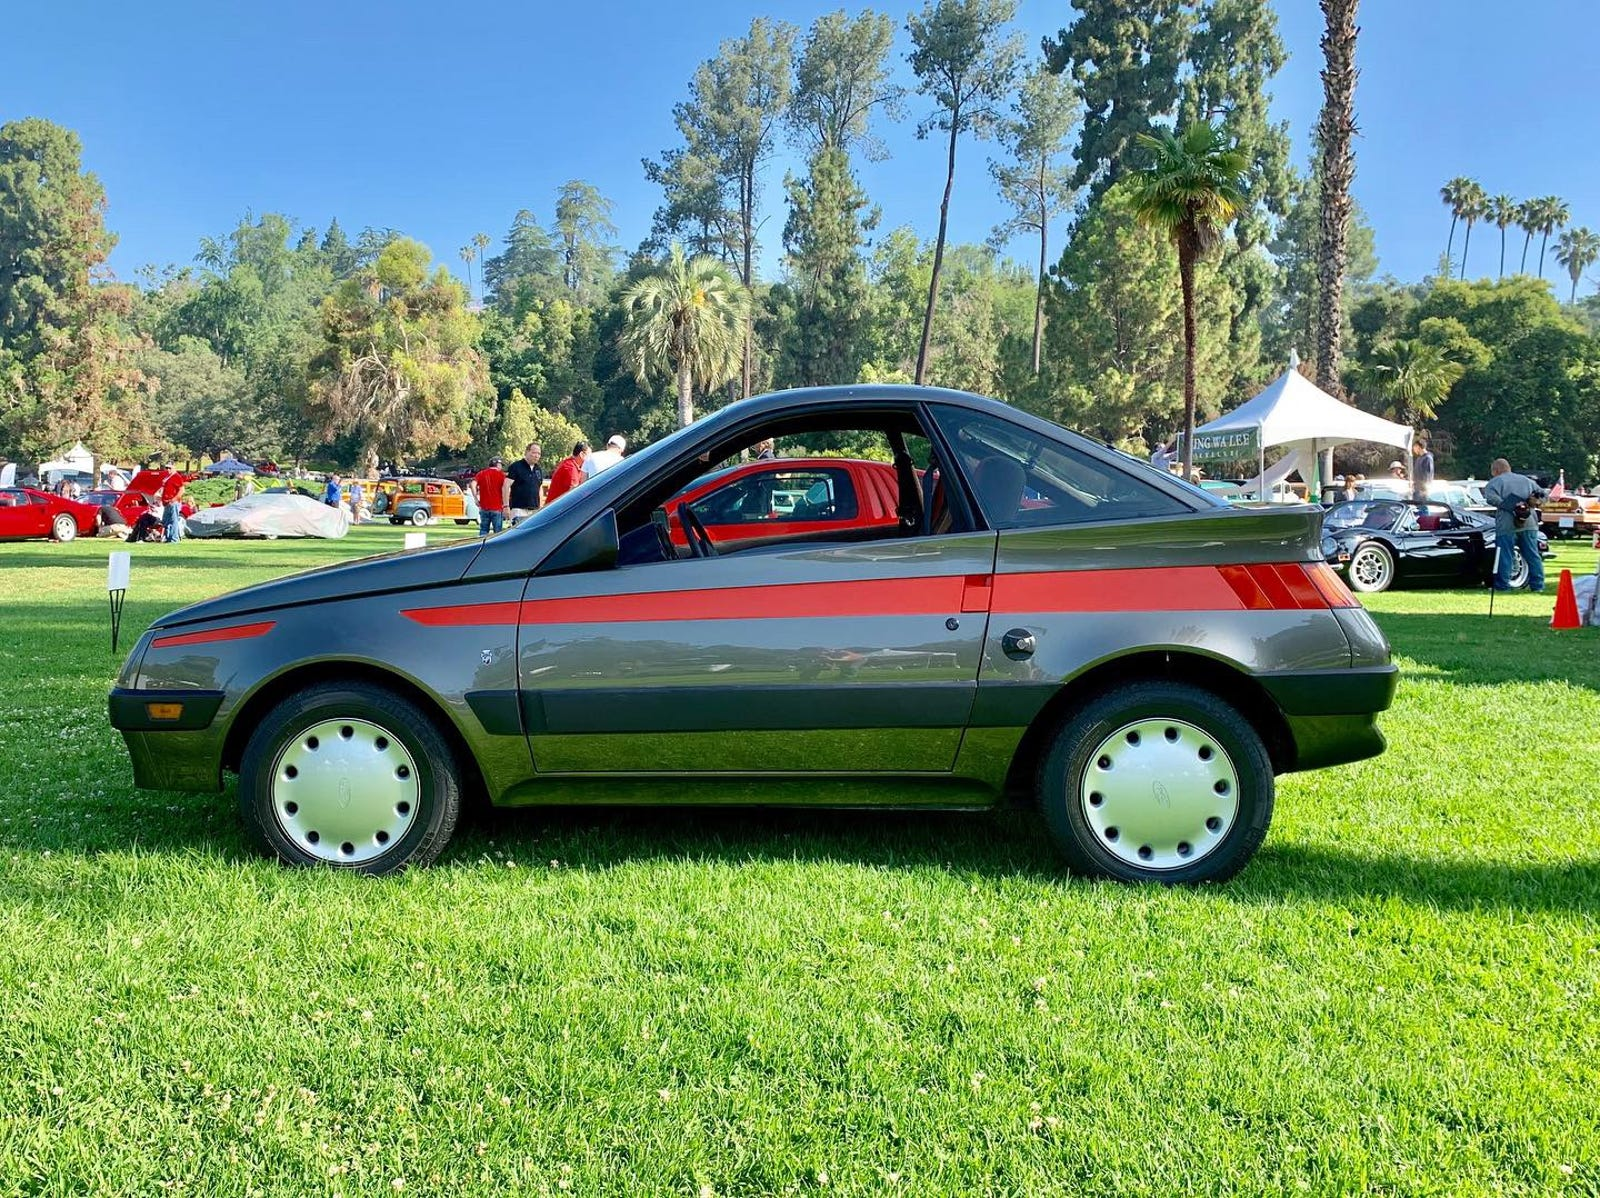 This is the 1982 Ghia Shuttler and it's always been a favorite of mine so it was a thrill to see it in person. This is like the most perfect car design ever.